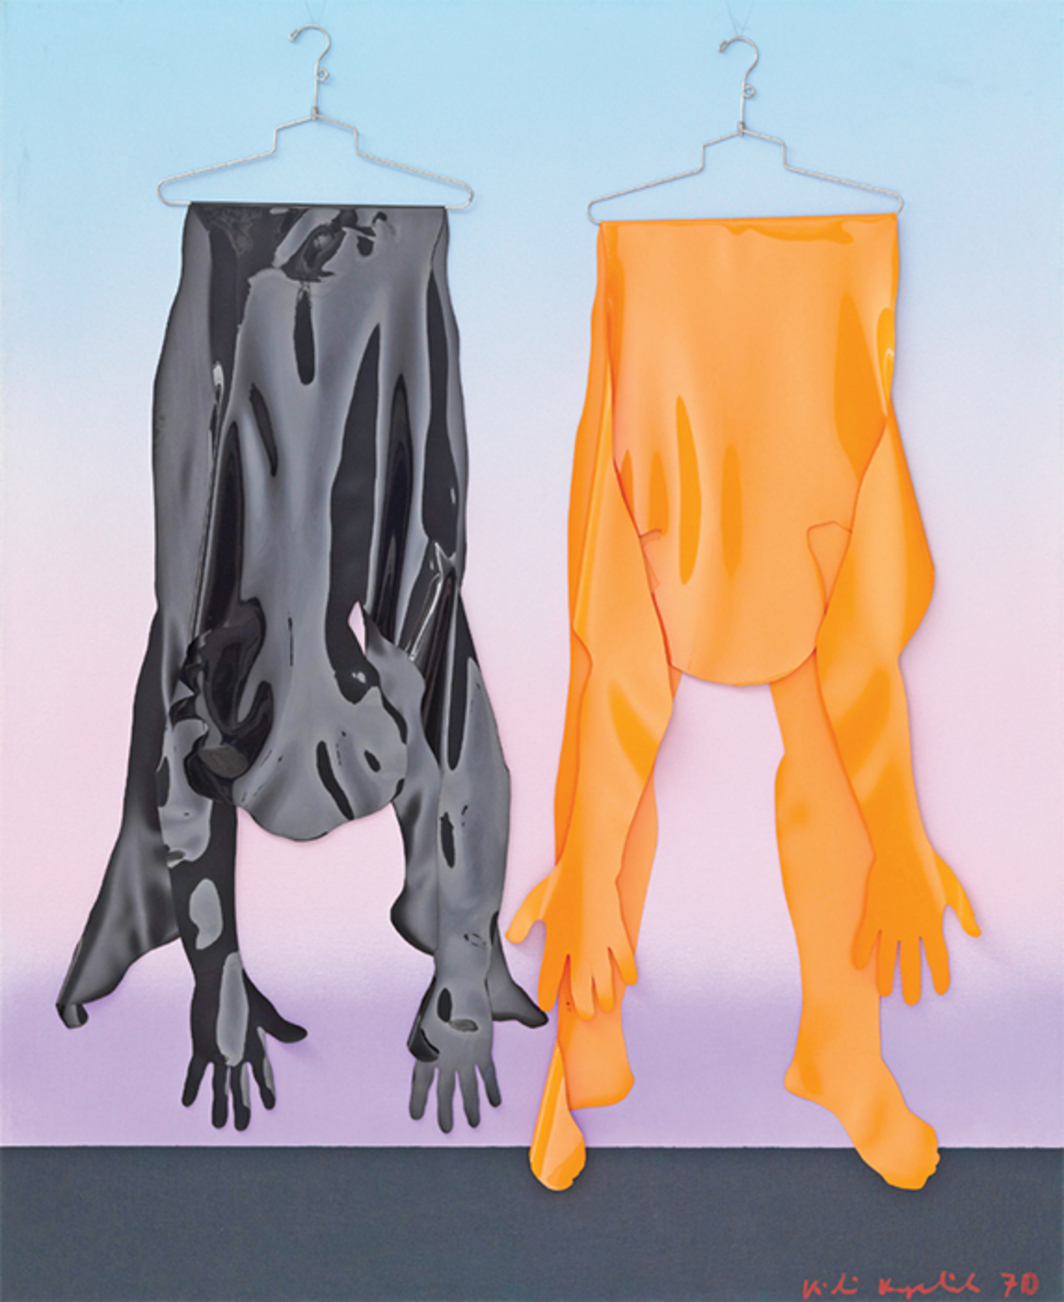 "Kiki Kogelnik, Hanging, 1970, acrylic, sheet vinyl, and hangers on canvas, 66 1/4 × 54""."